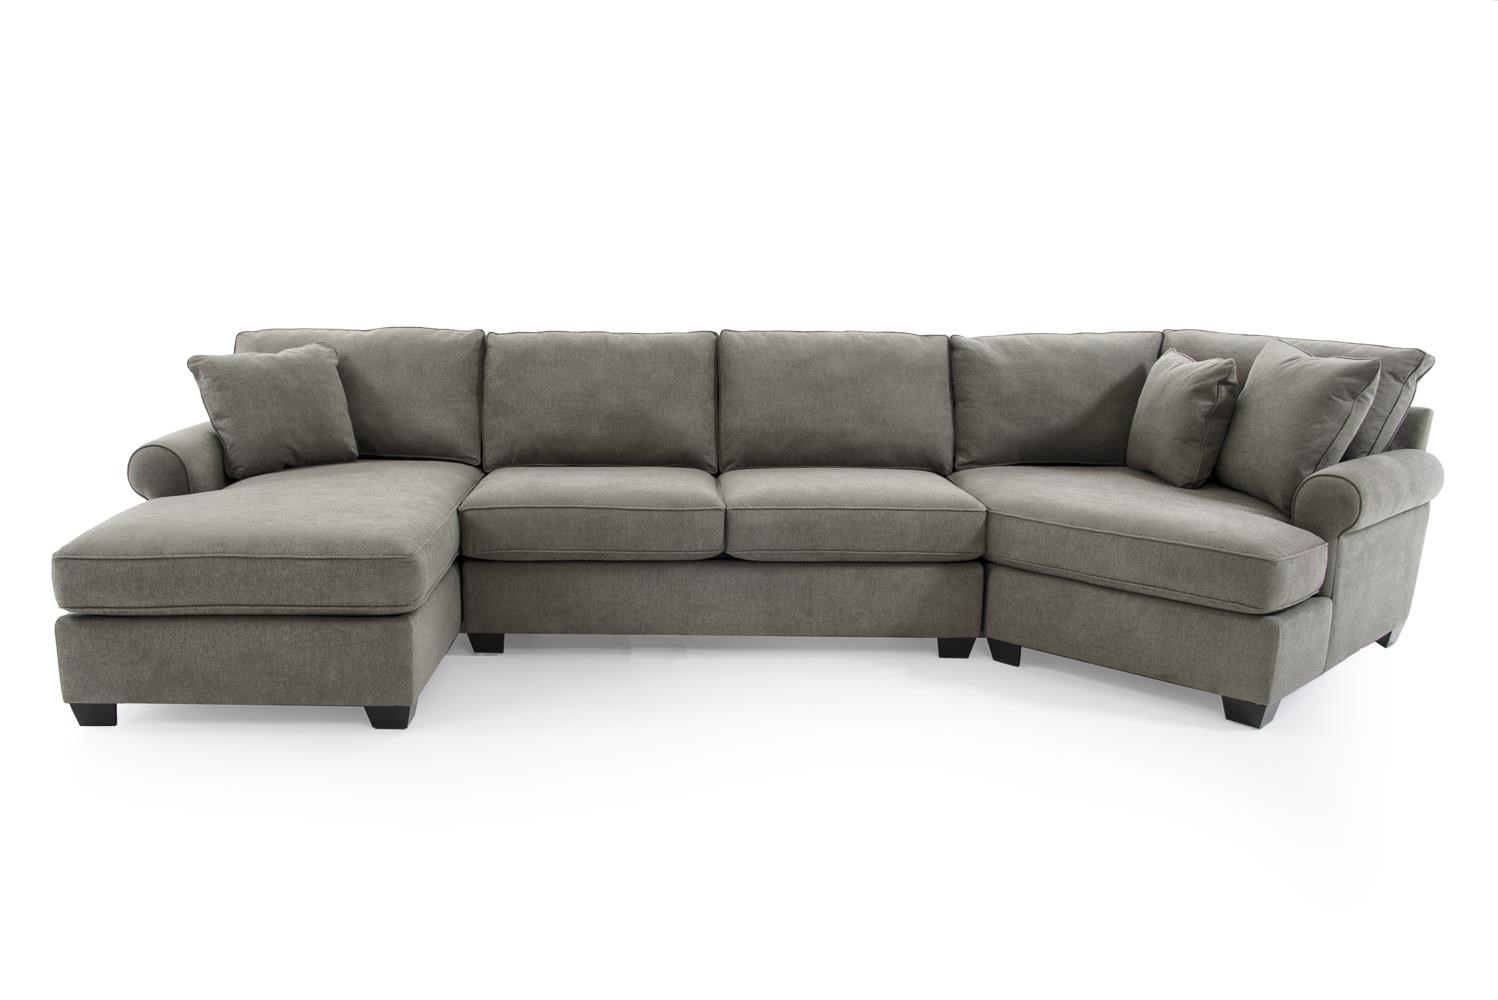 Max Home Jessica 9BA5 A CHLSAACCR GRAY Casual Three Piece Sectional Sofa With Cuddler Baers